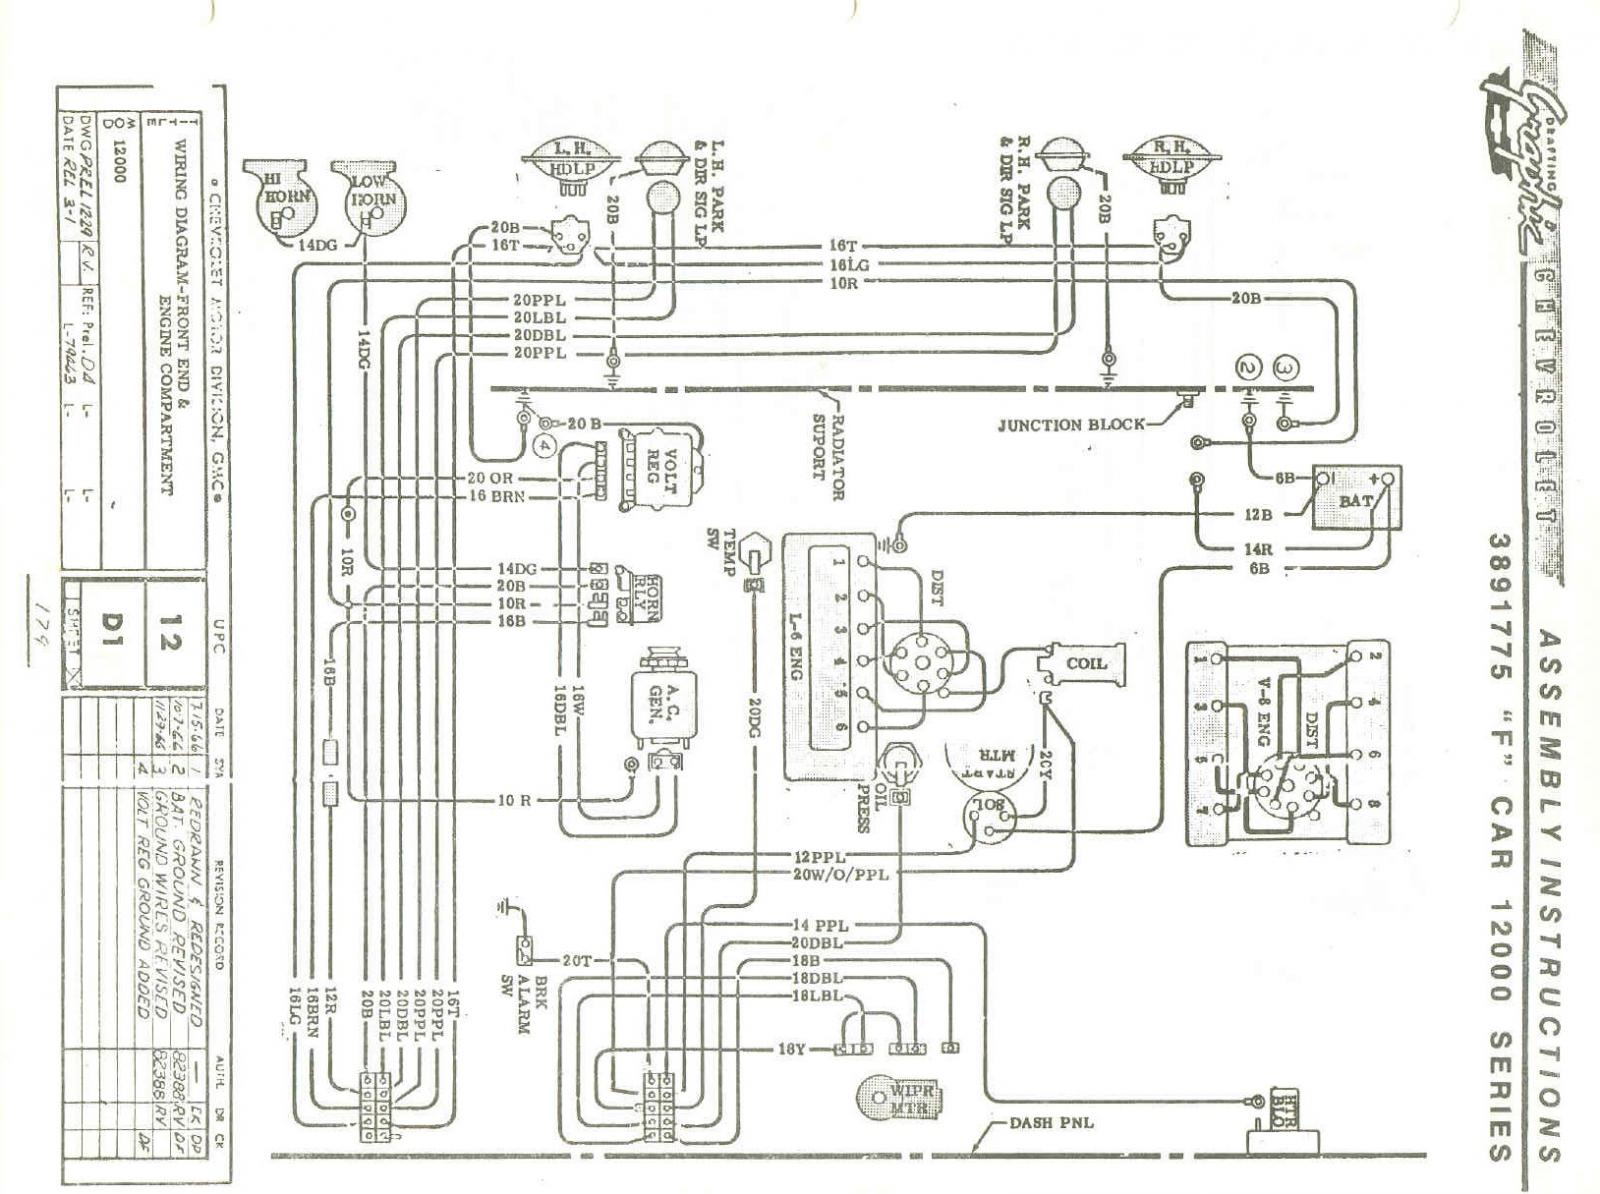 camaro wiring harness diagram discover your wiring tail light wiring harness 1976 firebird